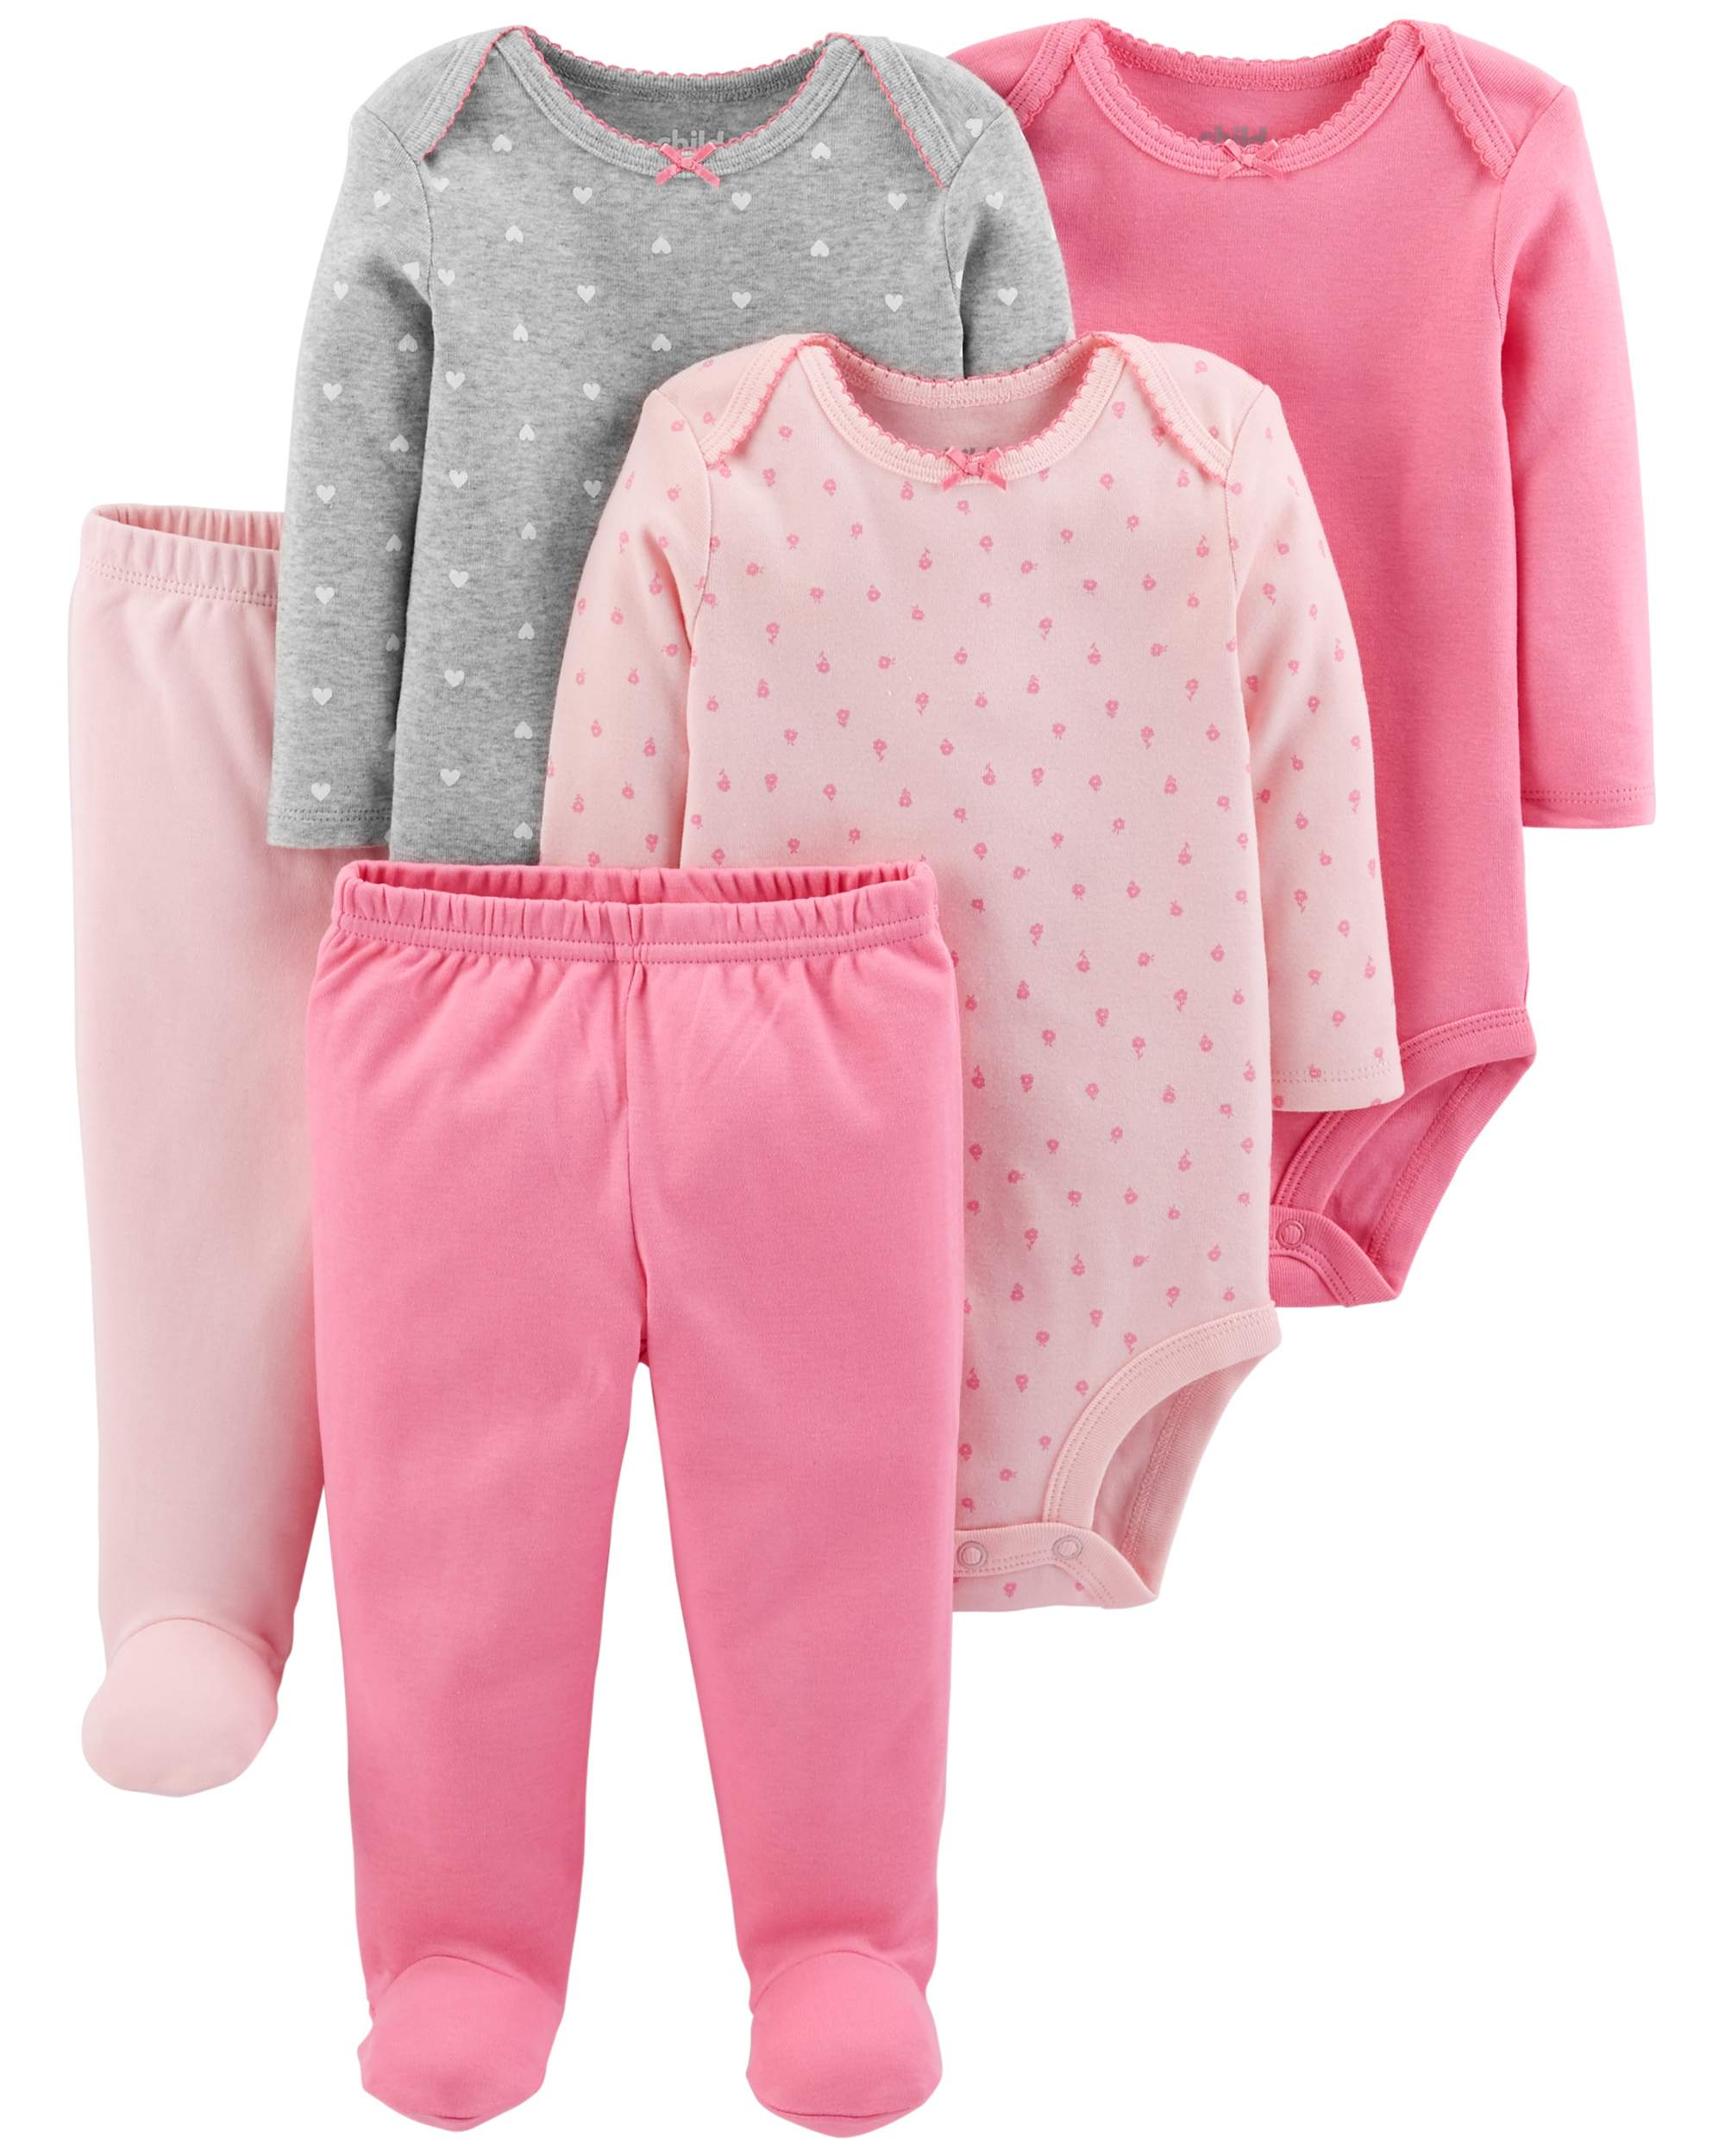 Basic Long Sleeve Bodysuits & Pants, 5pc Set (Baby Girls)